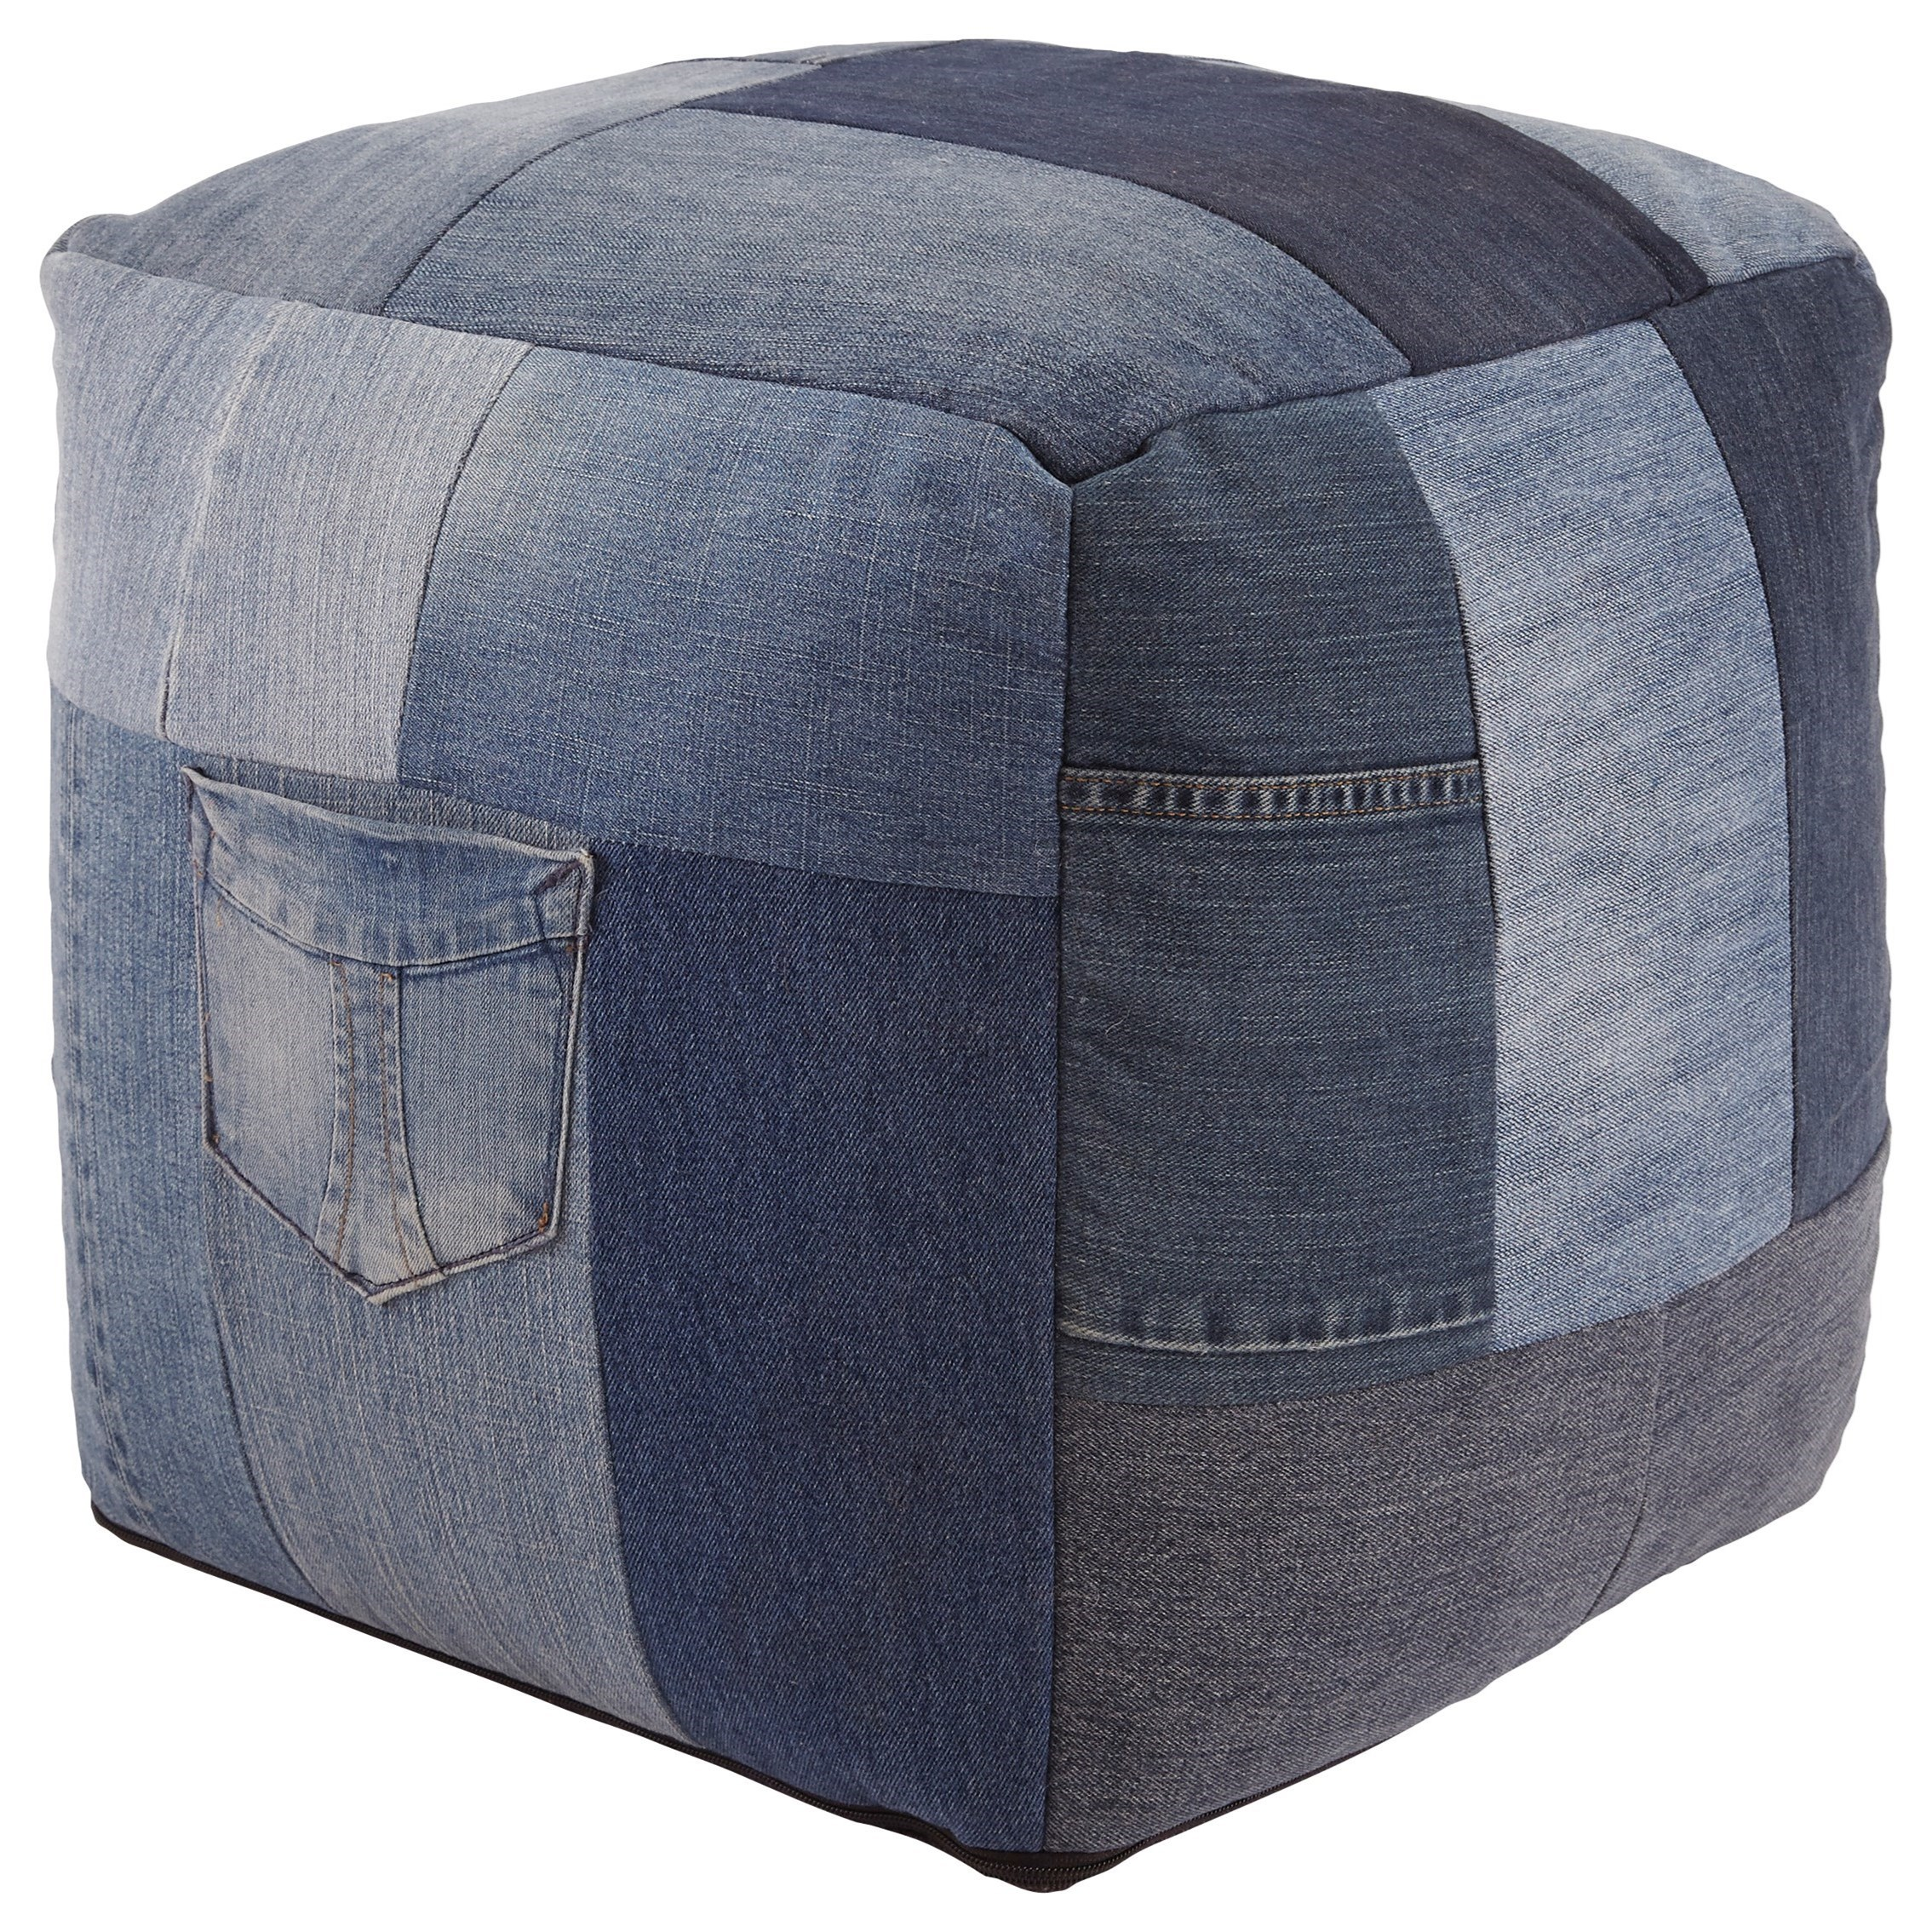 Signature Design by Ashley Poufs Aaden - Blue Pouf - Item Number: A1000549